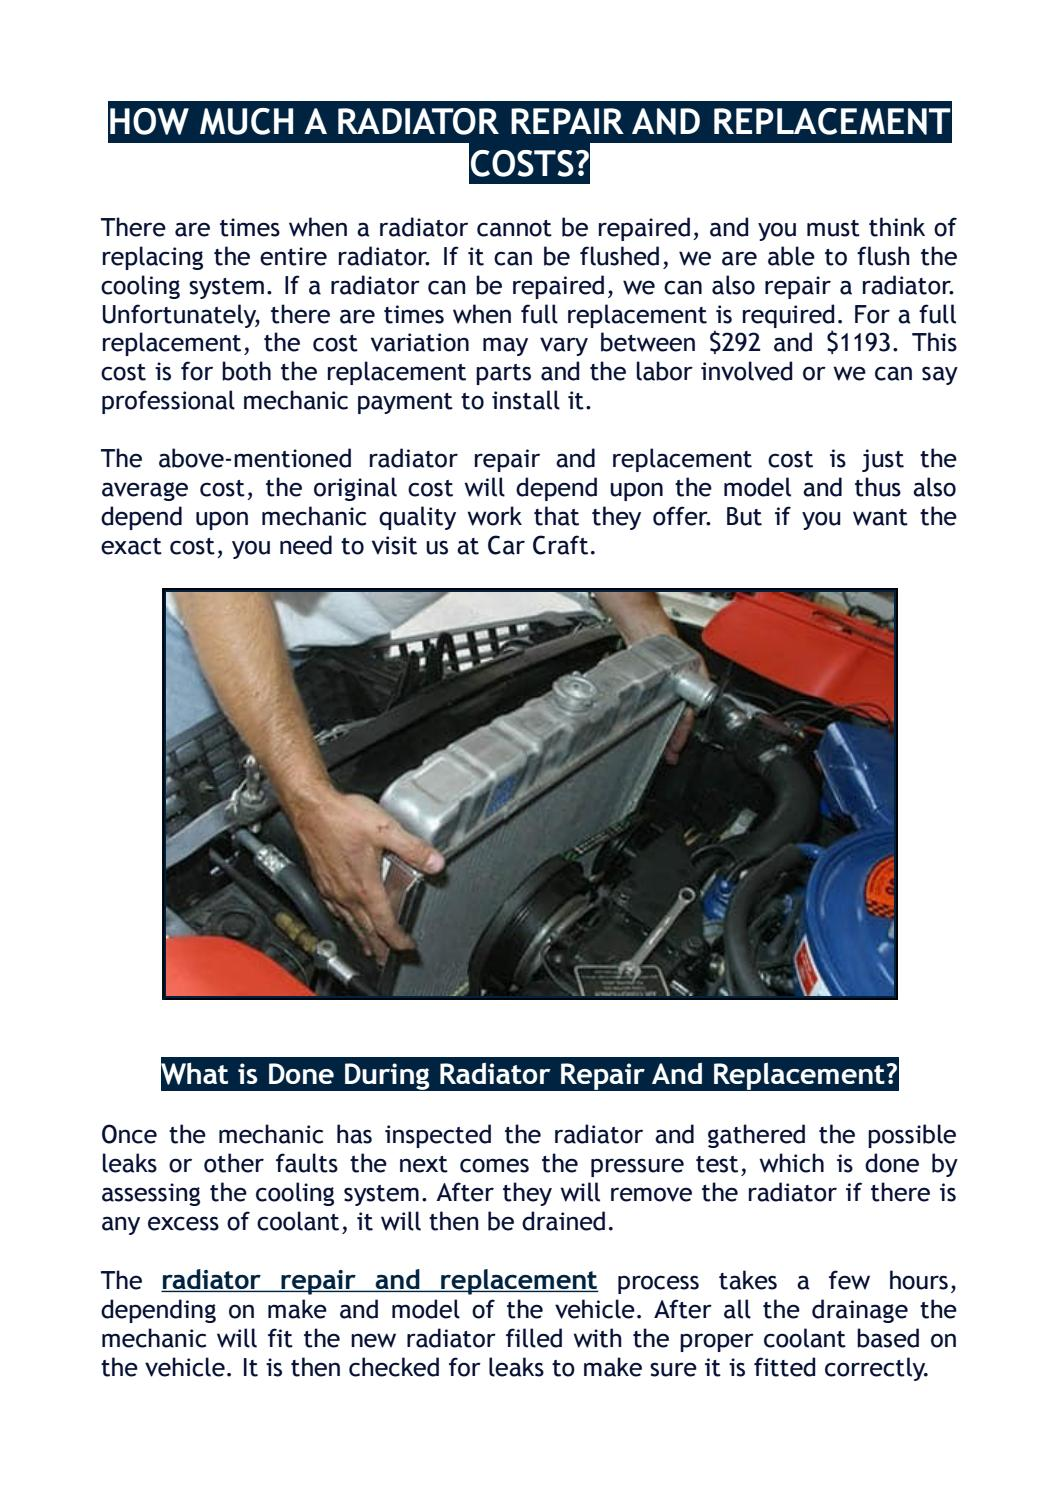 New Radiator Cost >> How Much A Radiator Repair And Replacement Costs By